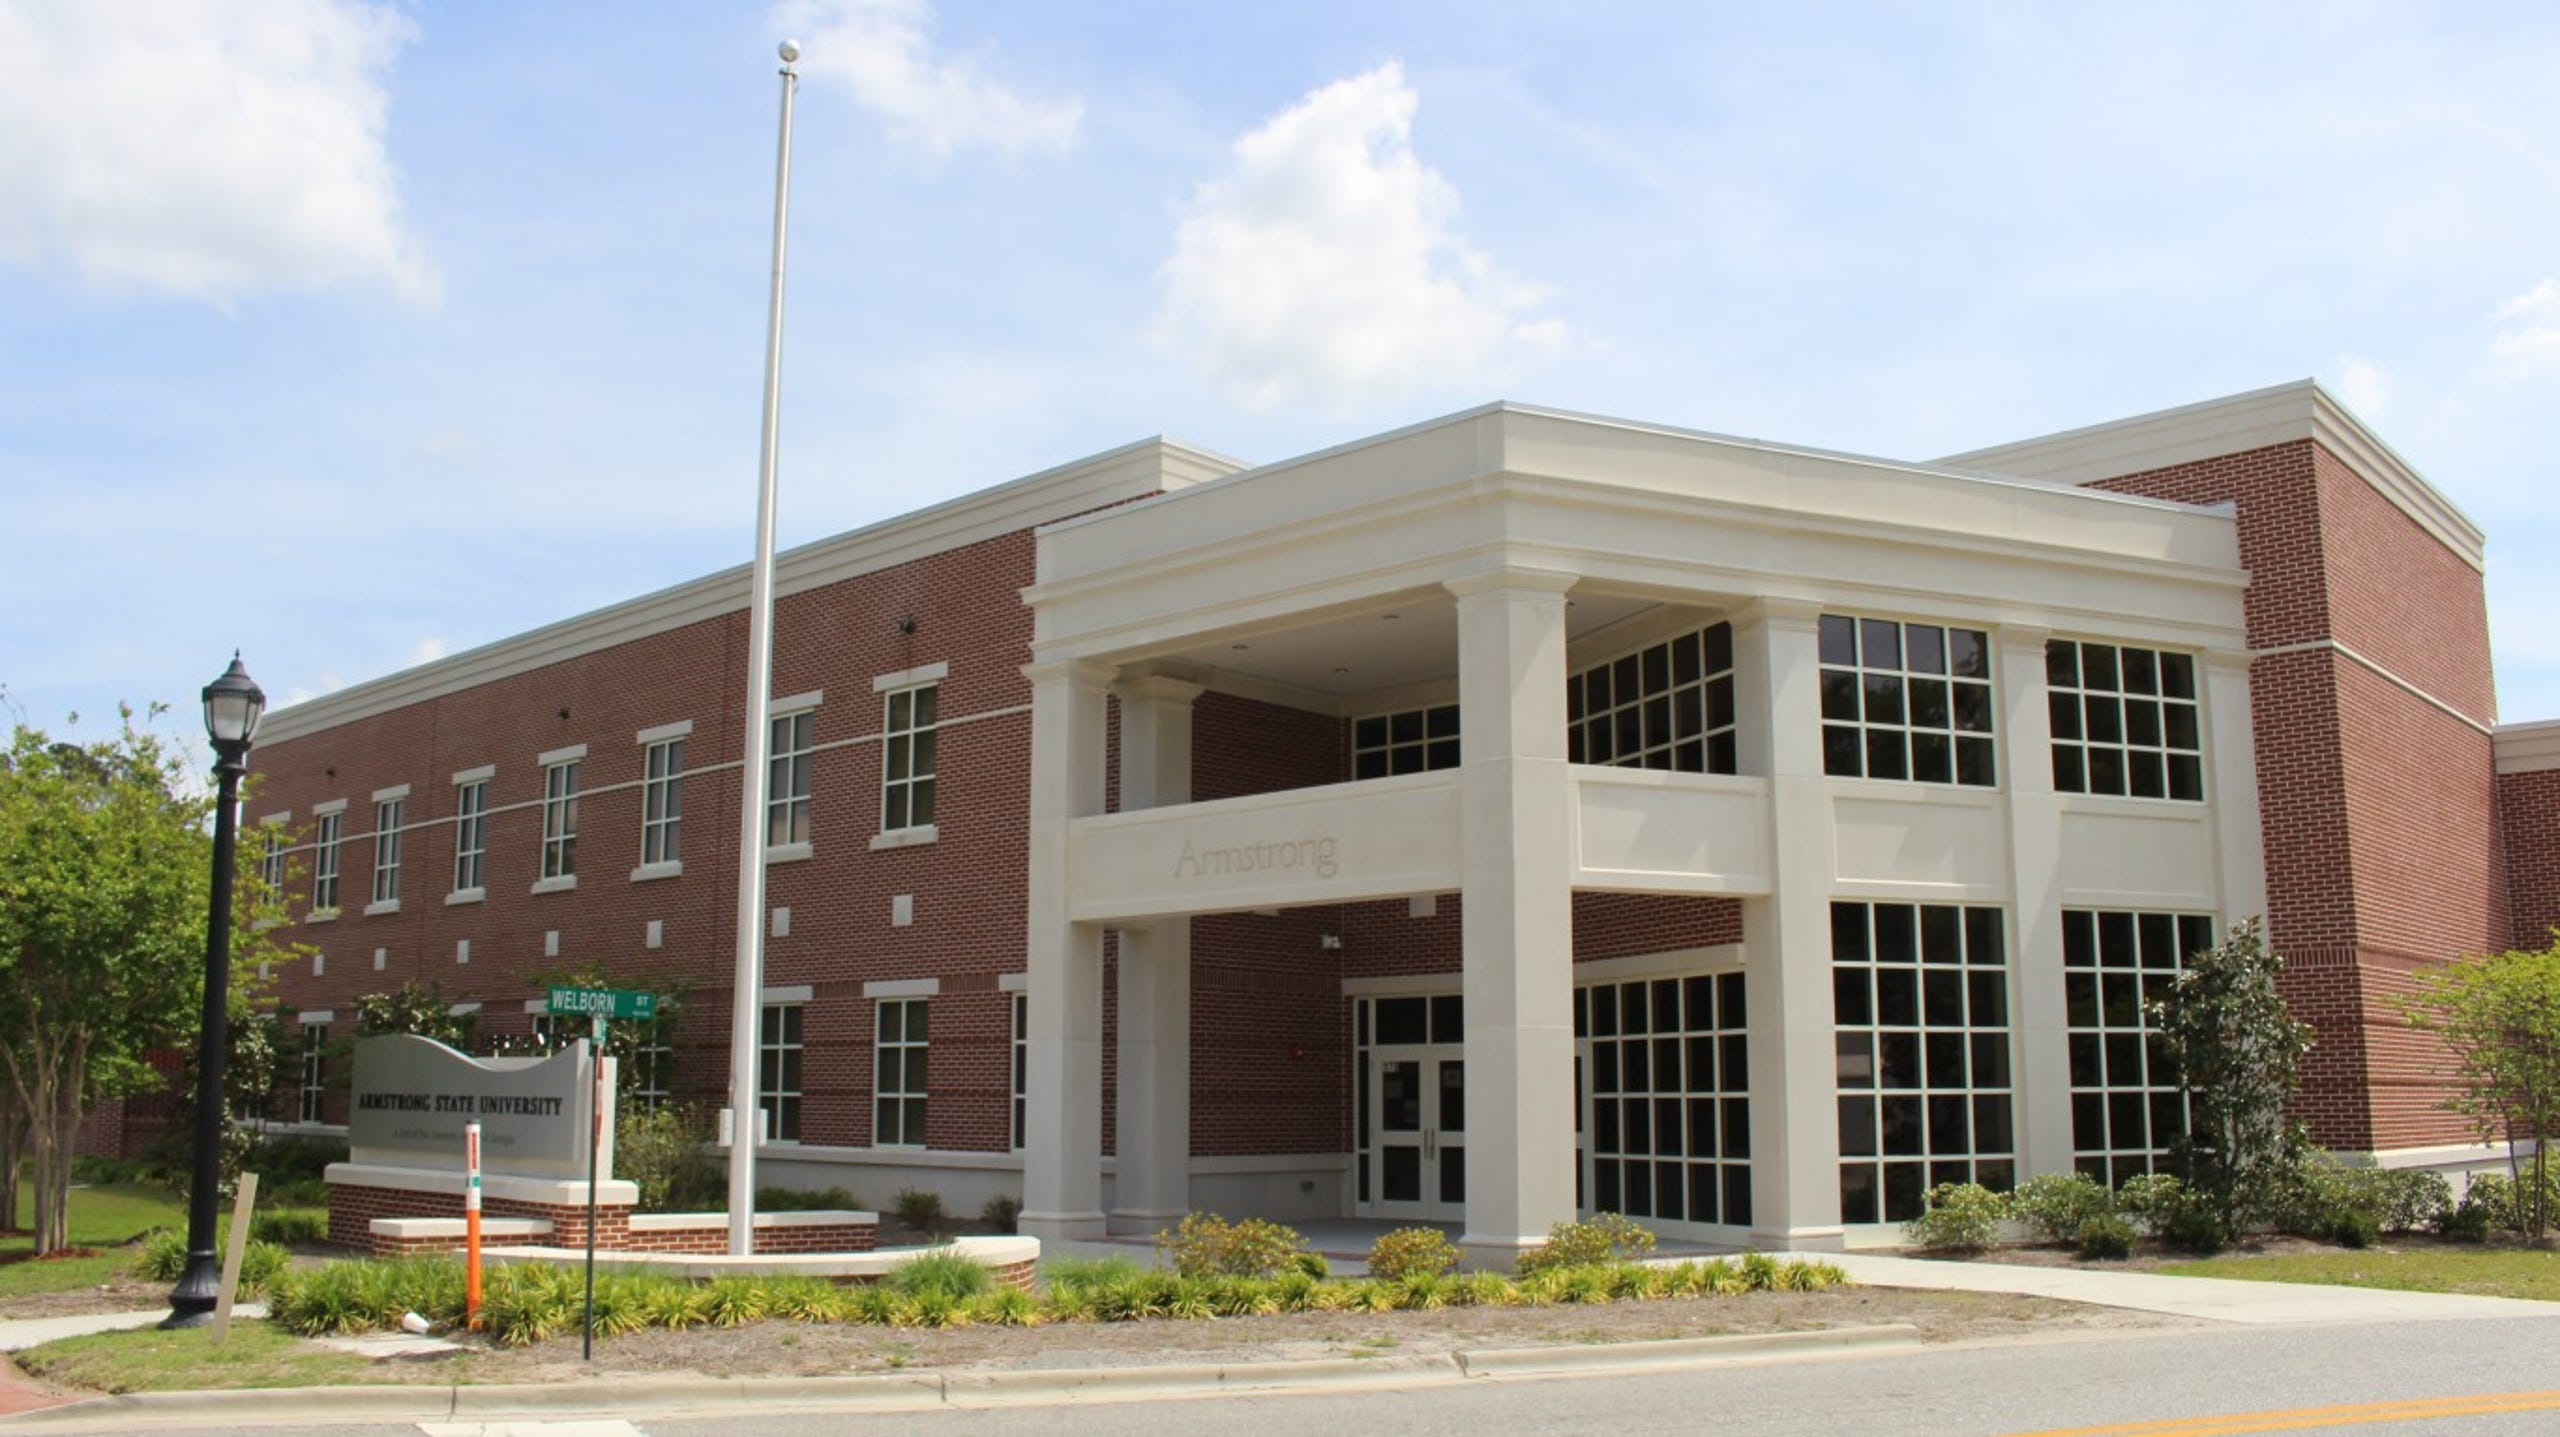 <strong>6. Hinesville, Georgia</strong><br /> <strong>&bull; Preschool enrollment:</strong> 28.3% (lowest 10%)<br /> <strong>&bull; High school graduation rate:</strong> 83.3%<br /> <strong>&bull; Pop. with access to areas for exercise:</strong> 60.1% (lowest 10%)<br /> <strong>&bull; Property crime rate:</strong> N/A